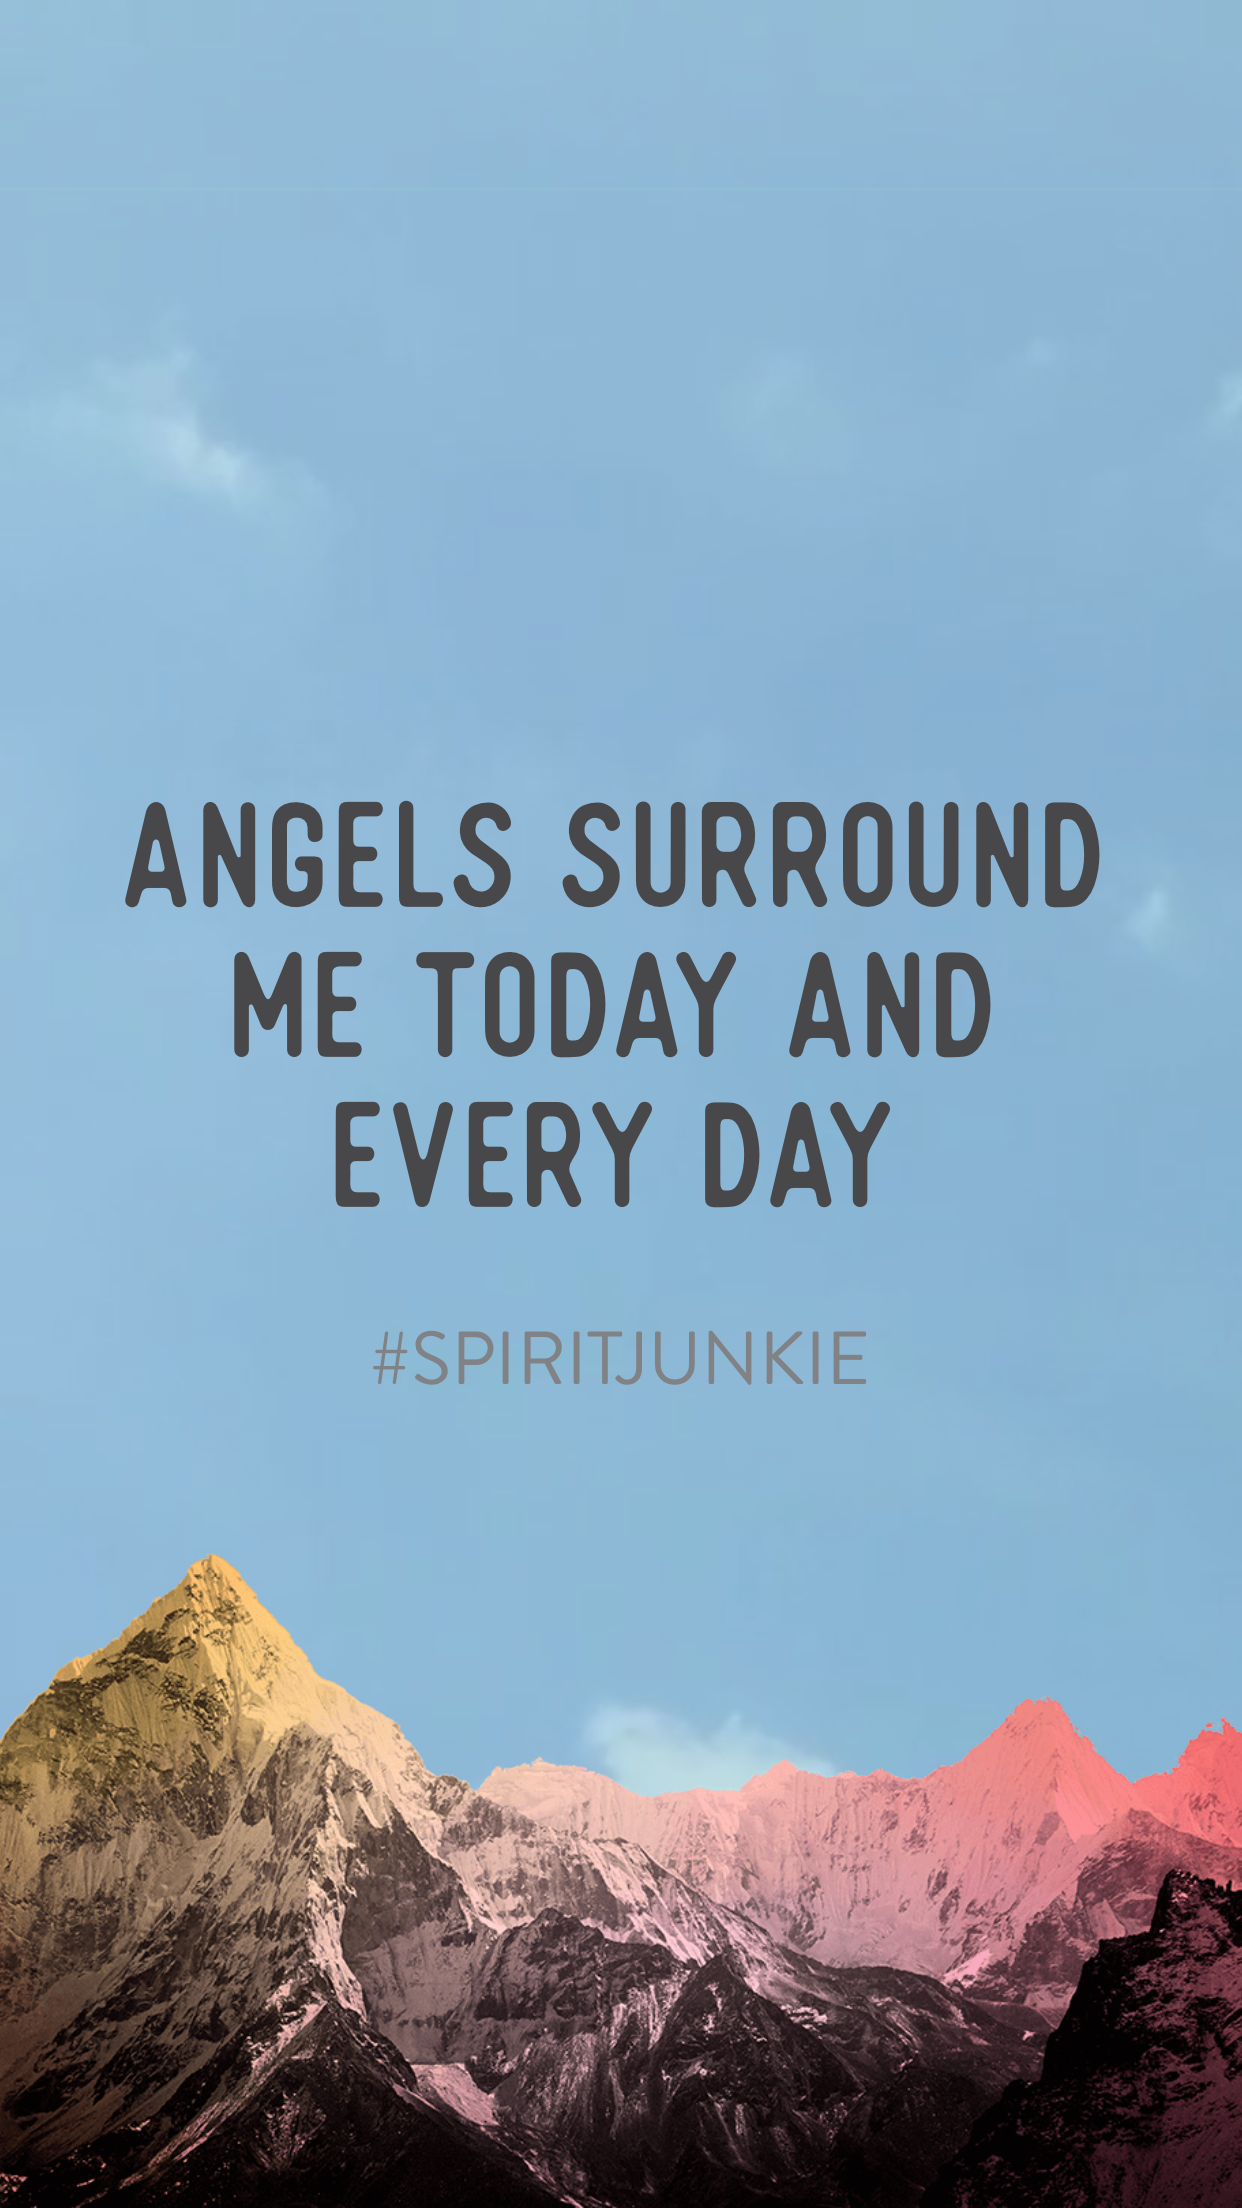 Angels surround me today and every day | Spirit Junkie App by Gabby Bernstein